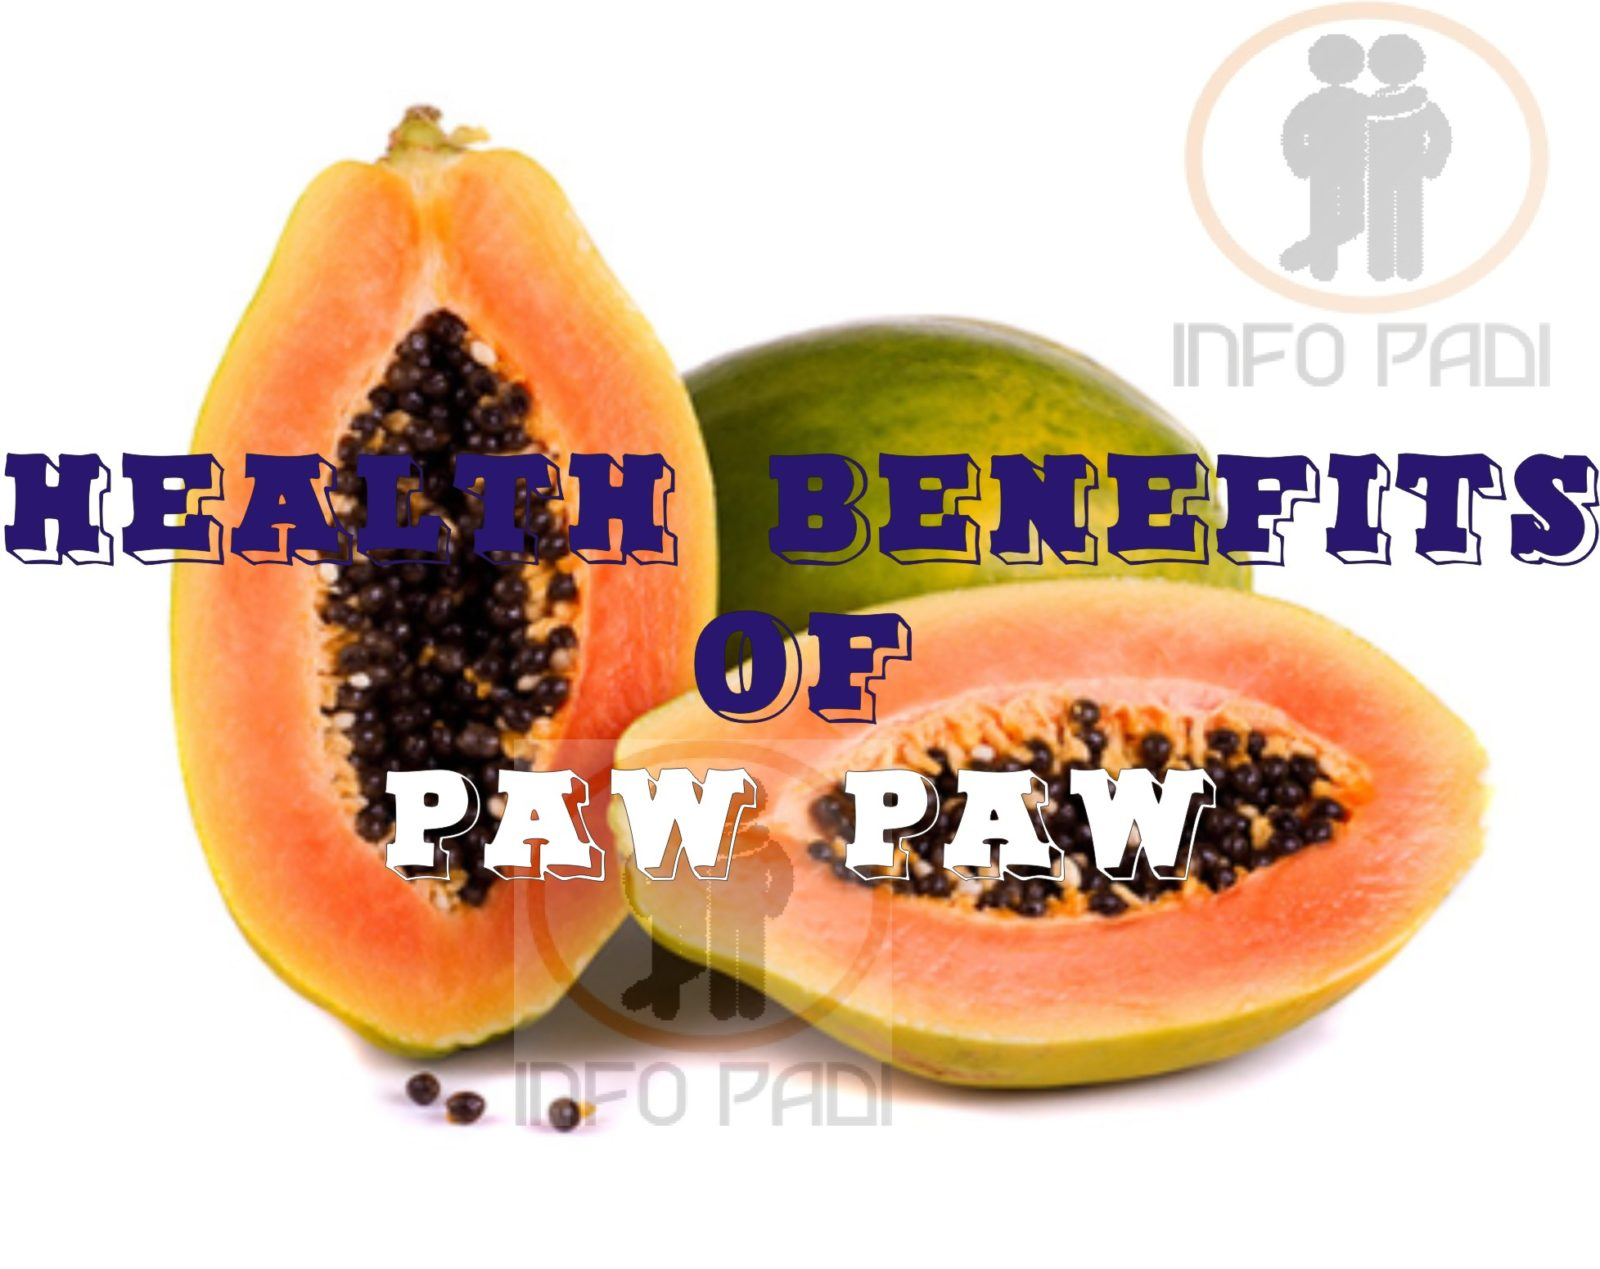 Paw Paw- Health benefits of this awesome fruit- Why you should eat papaya often